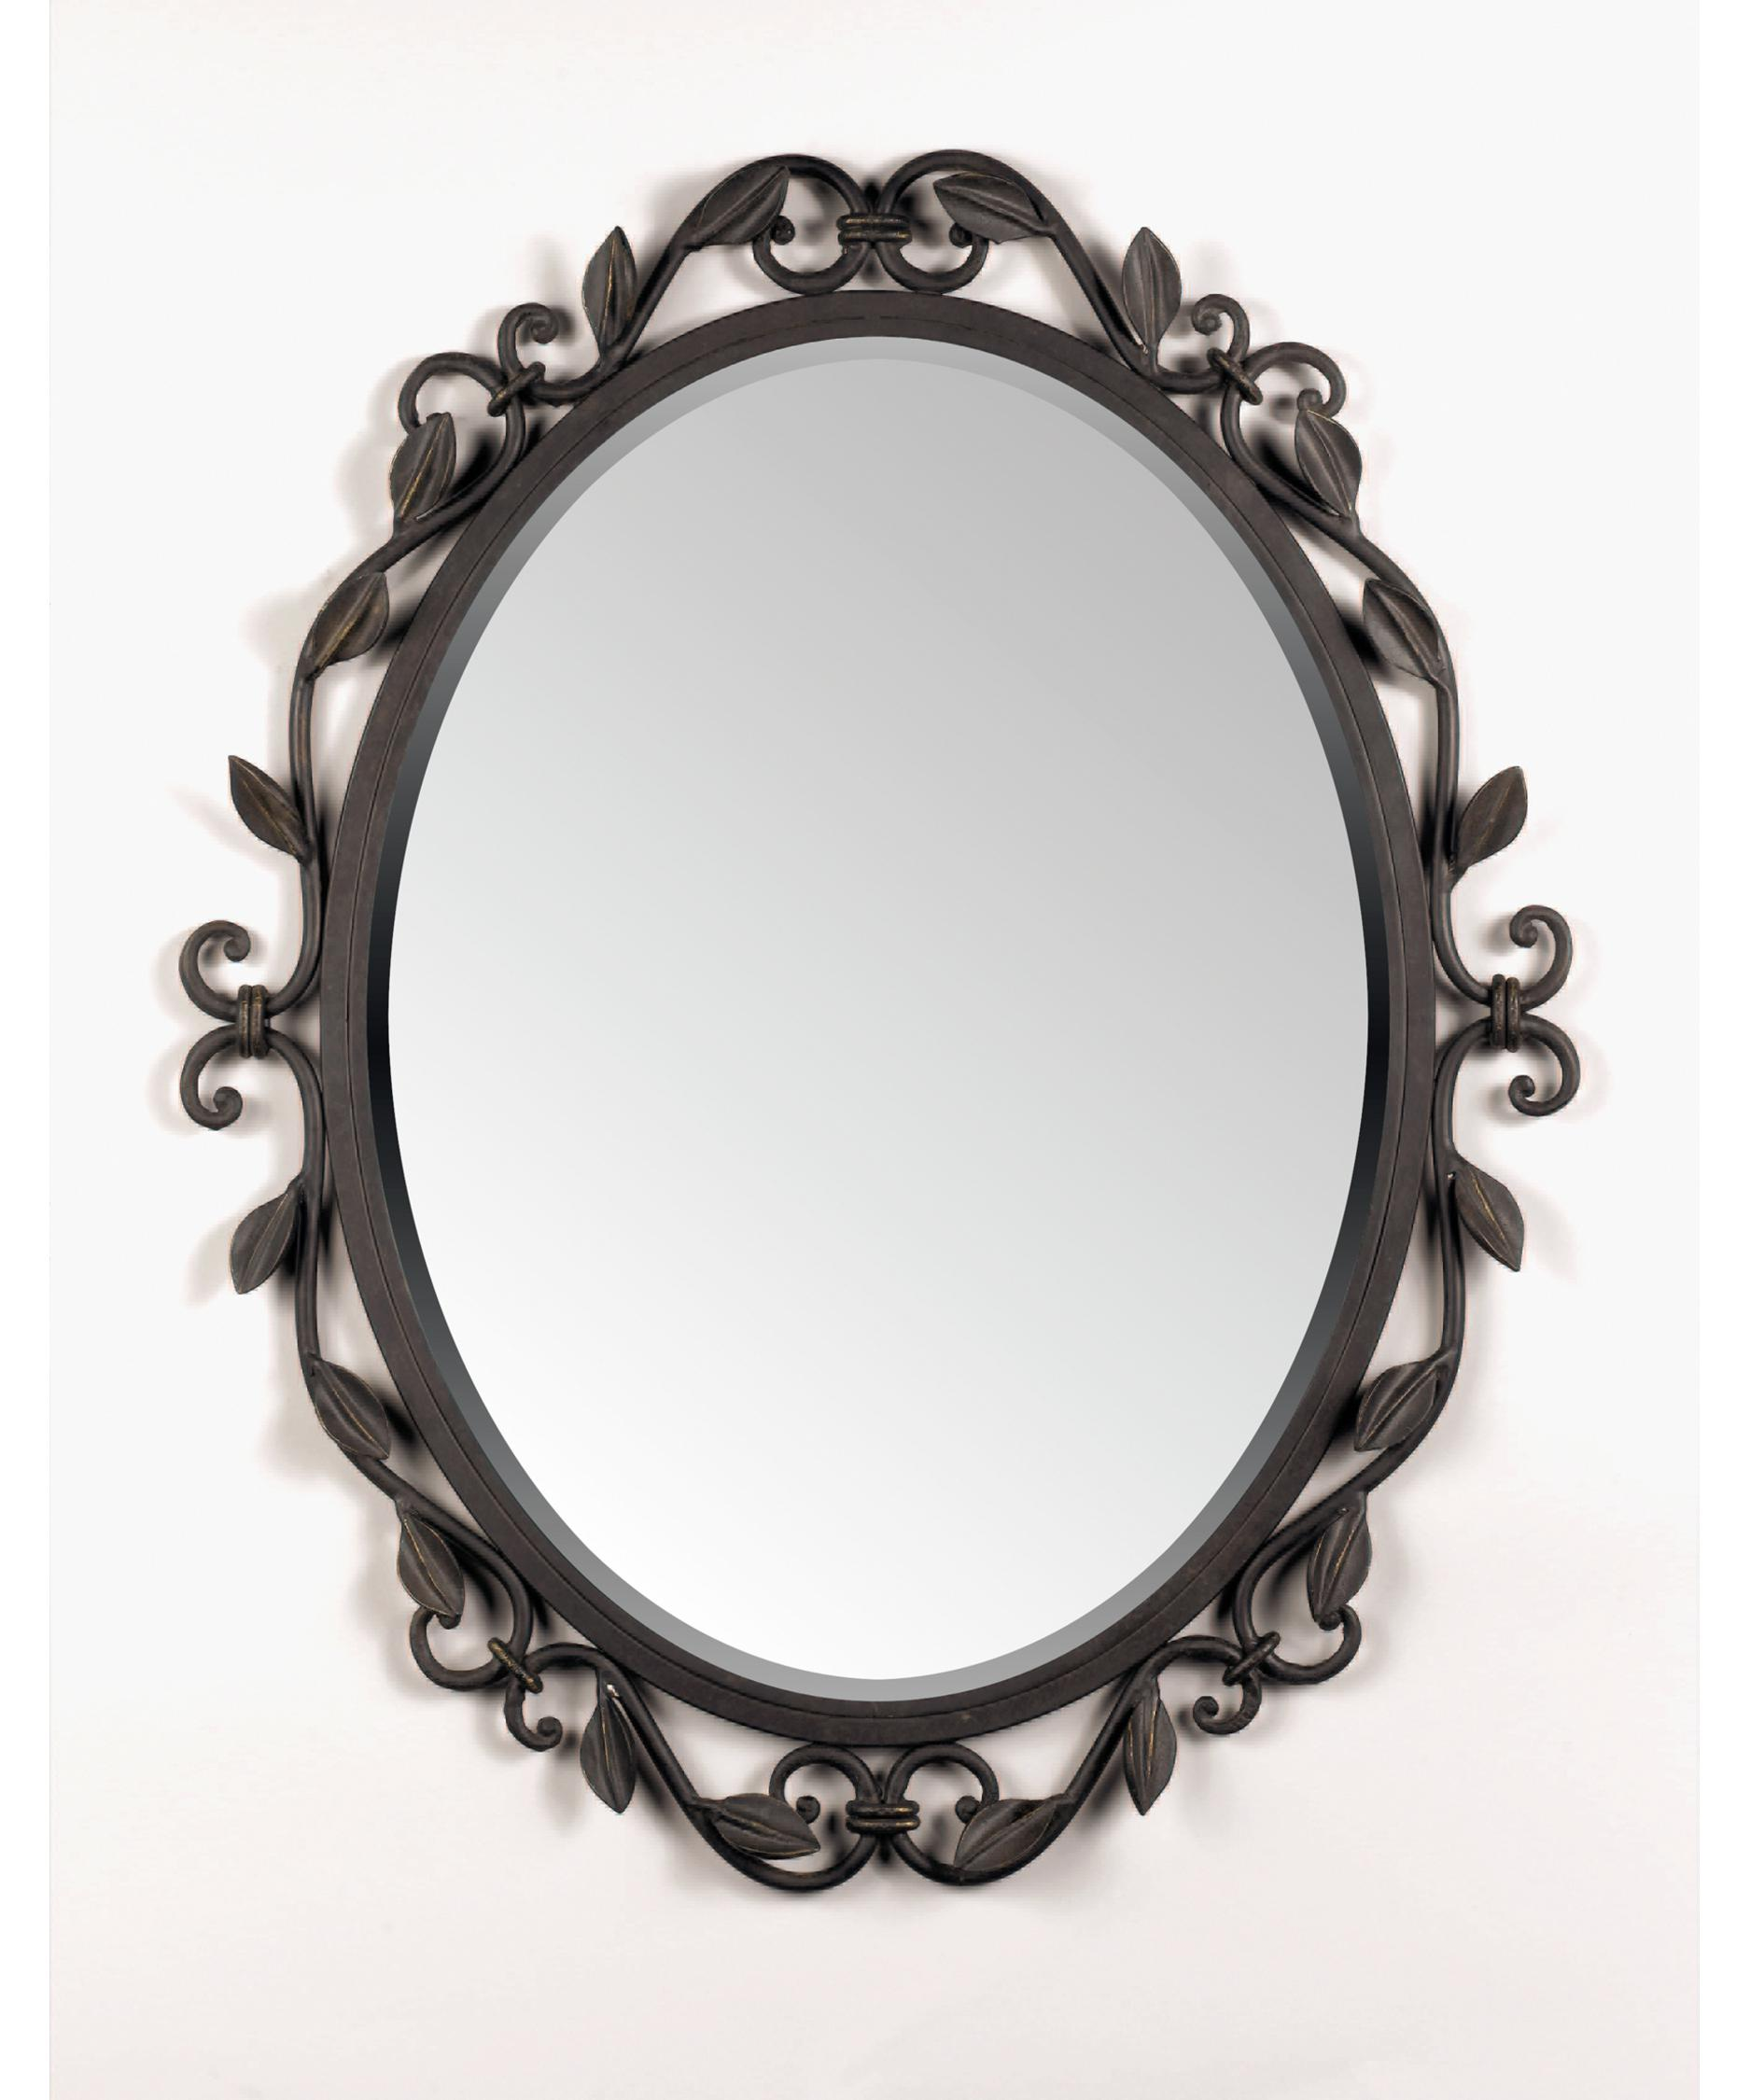 Quoizel Bathroom Mirrors quoizel ew43024 englewood wall mirror | capitol lighting 1